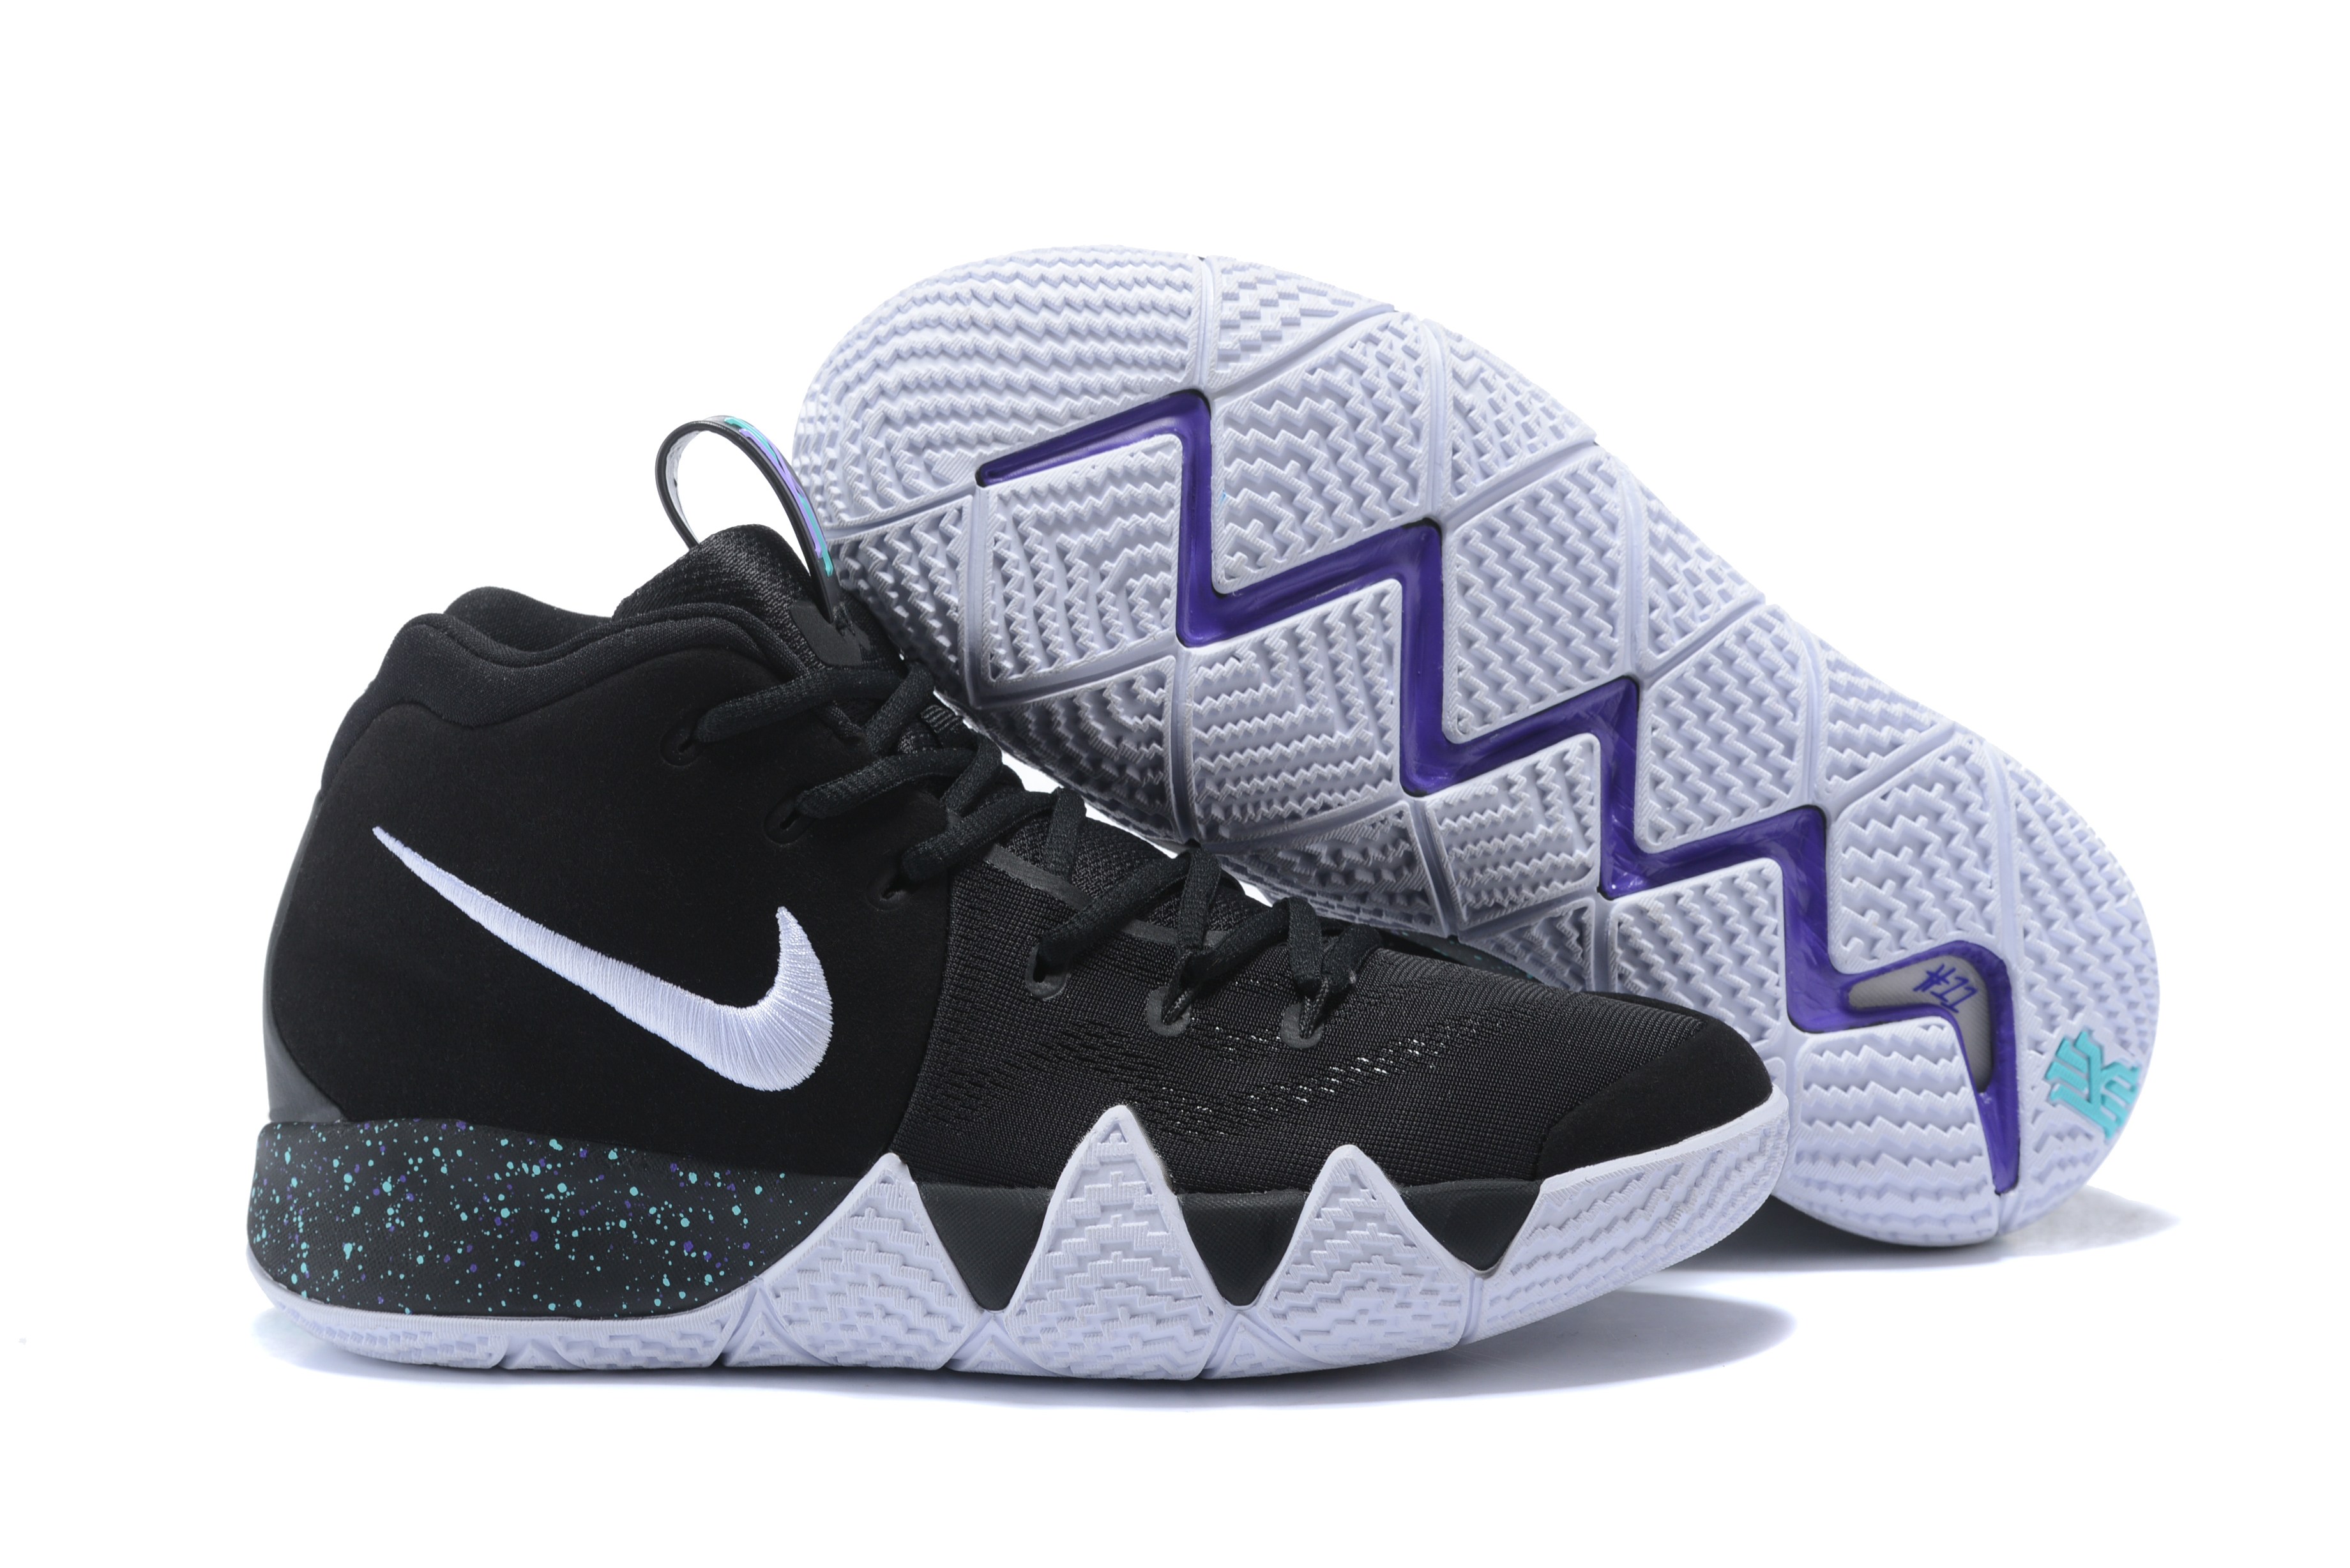 New Nike Kyrie 4 Black White Shoes